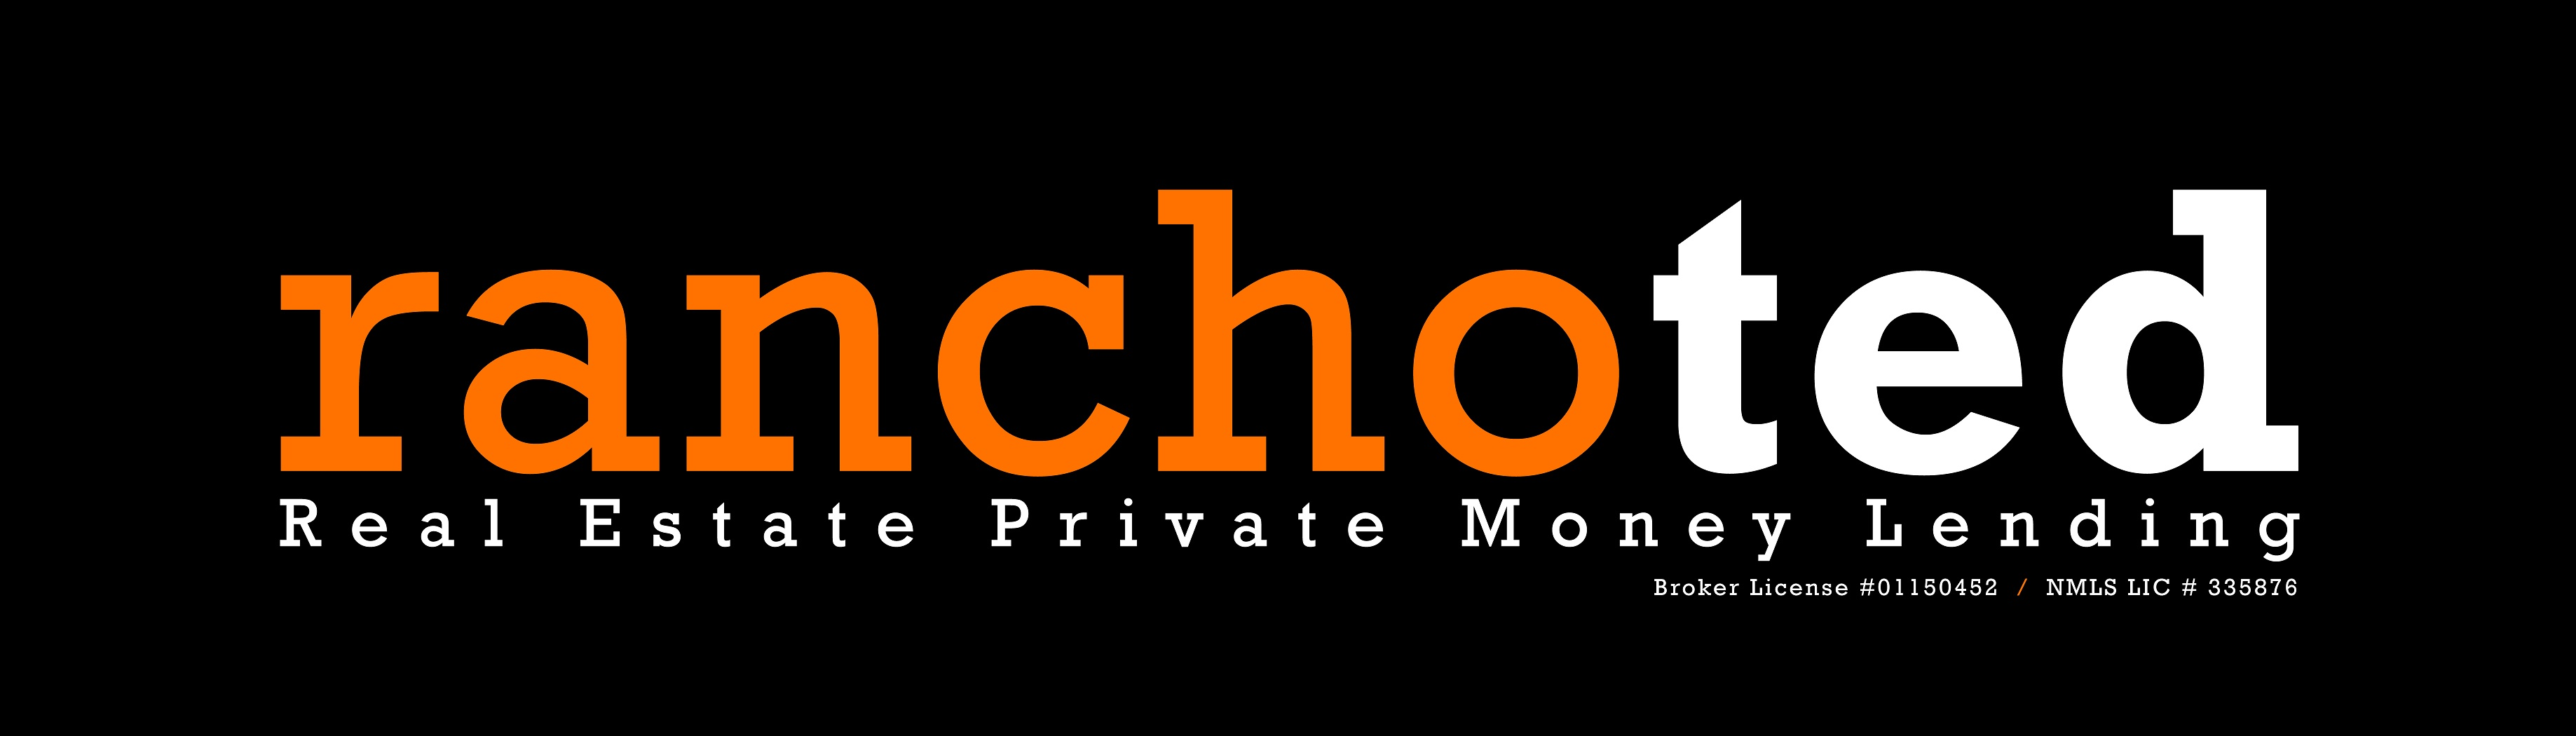 RanchoTed Real Estate Private Money Lending